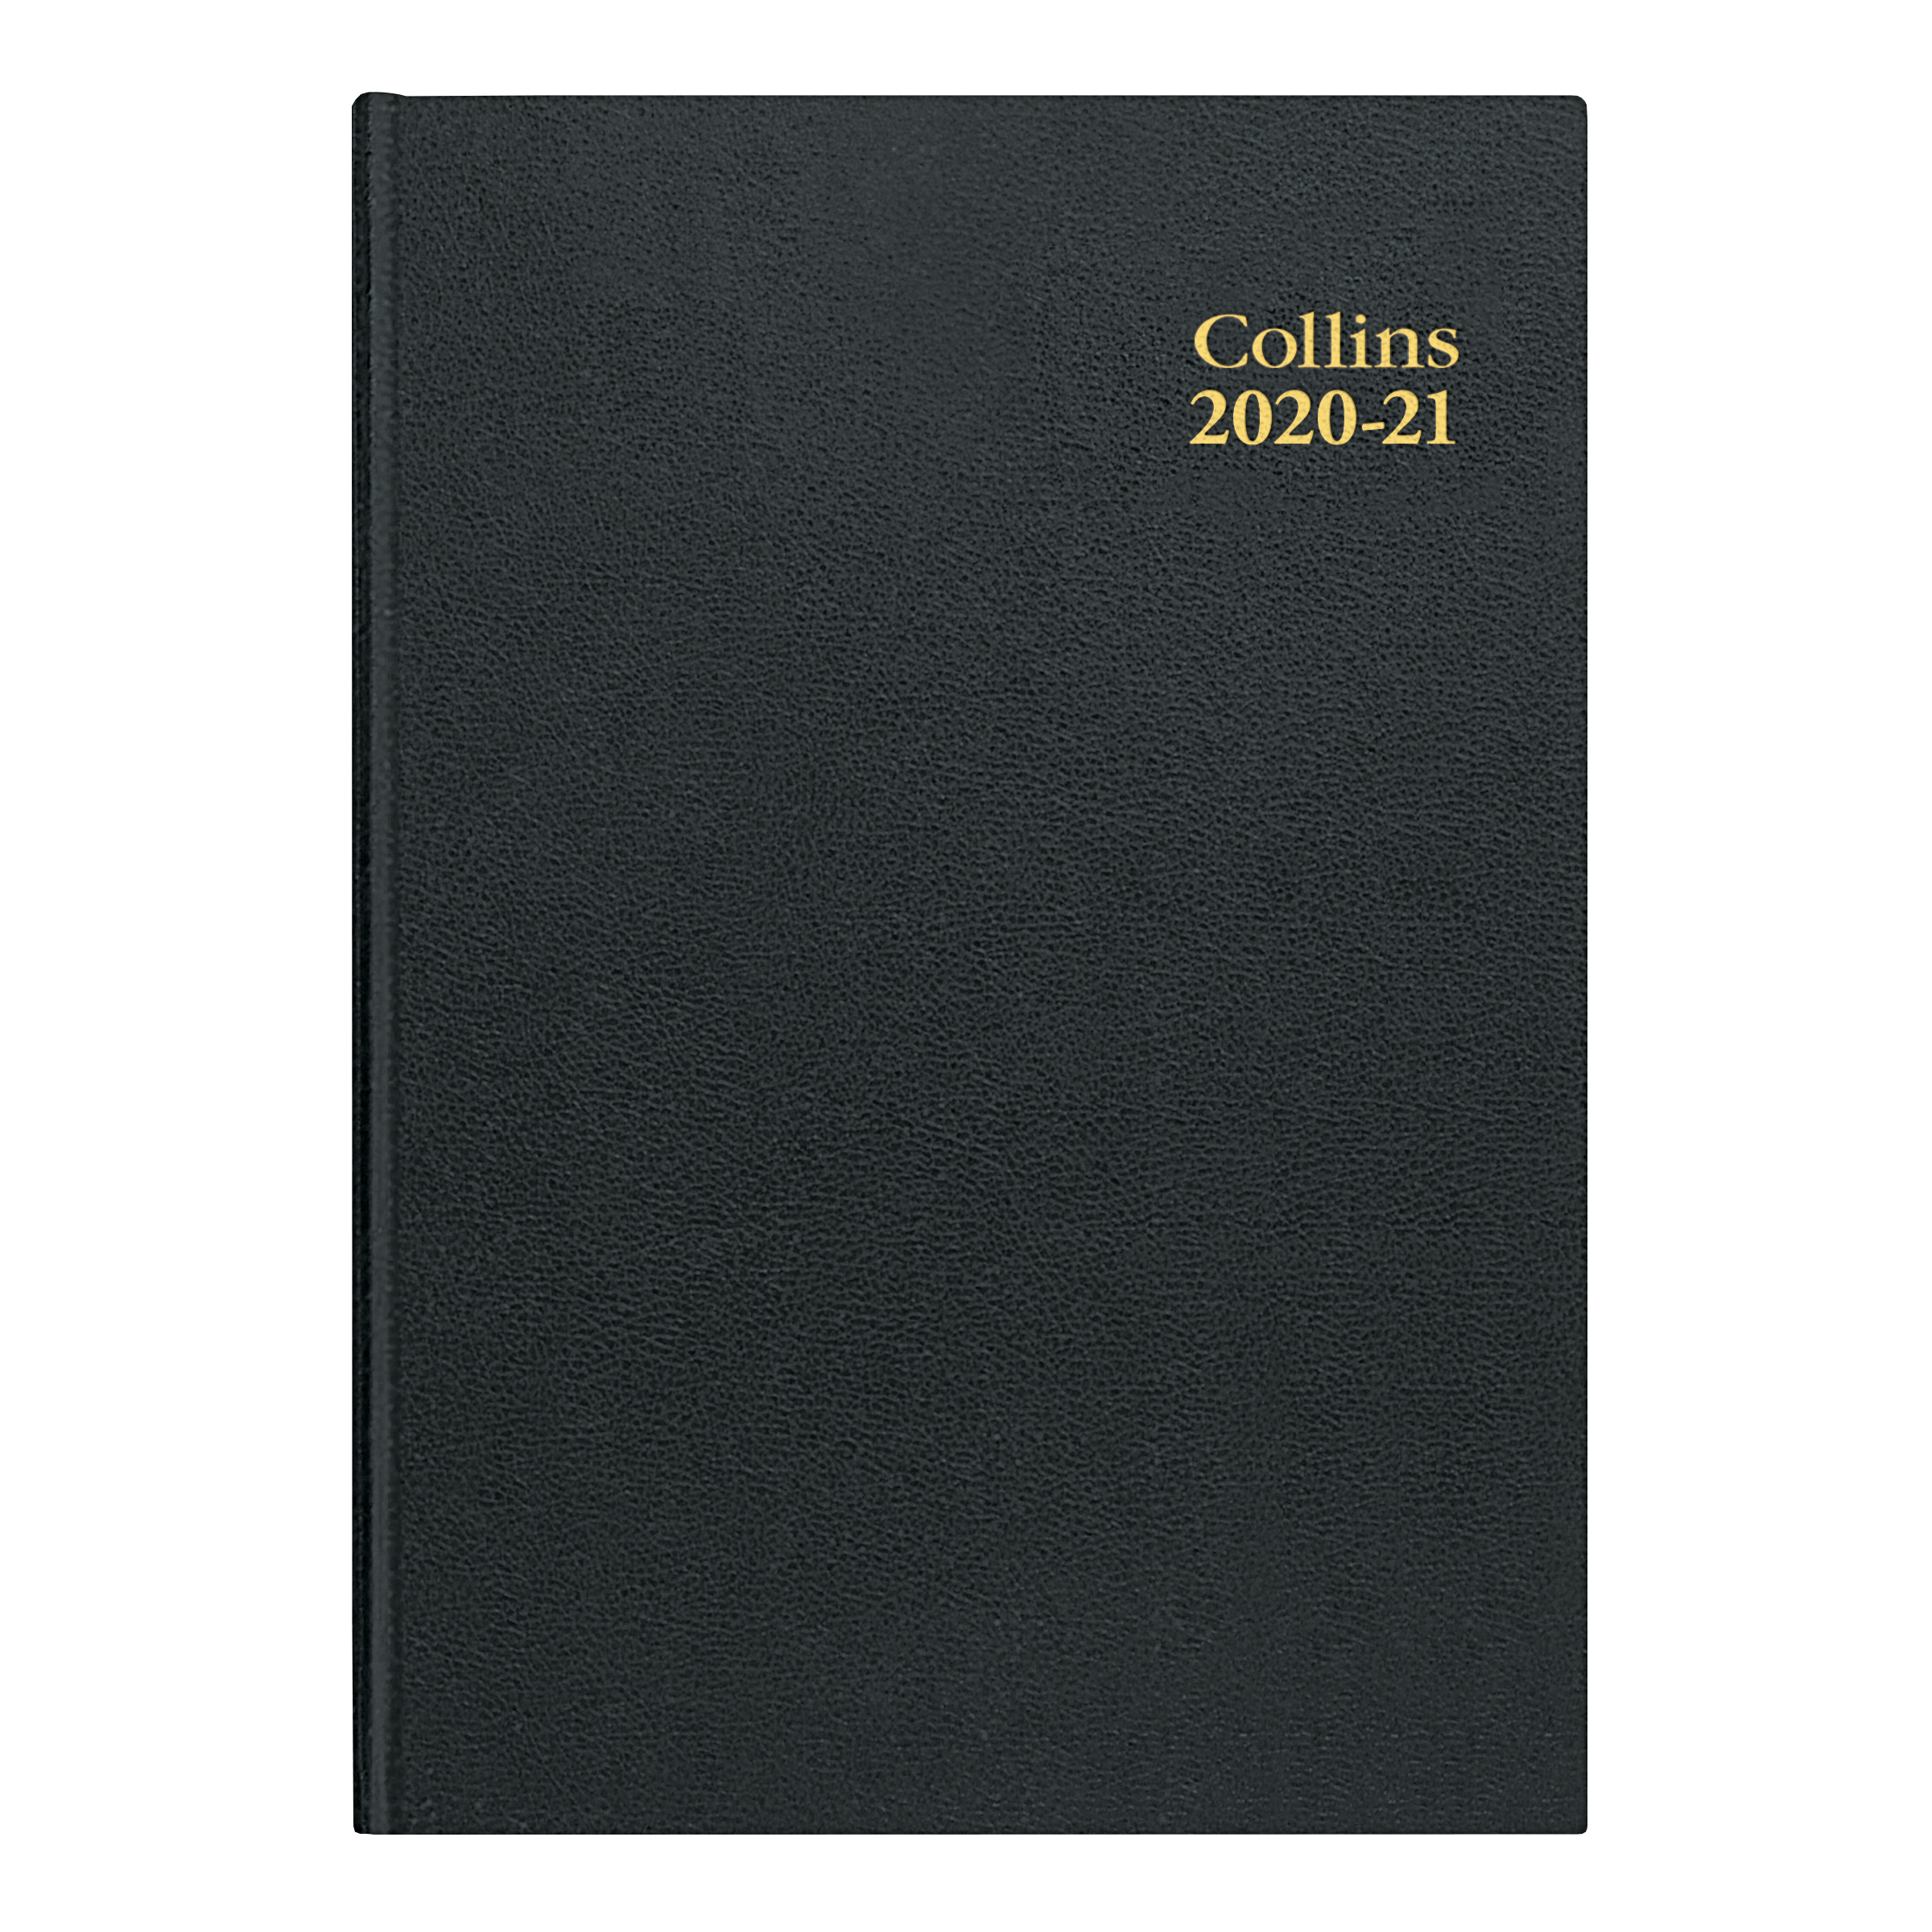 Diaries Collins 2020/21 Academic Diary Day-to-Page A4 Black Ref 44M.99-2021